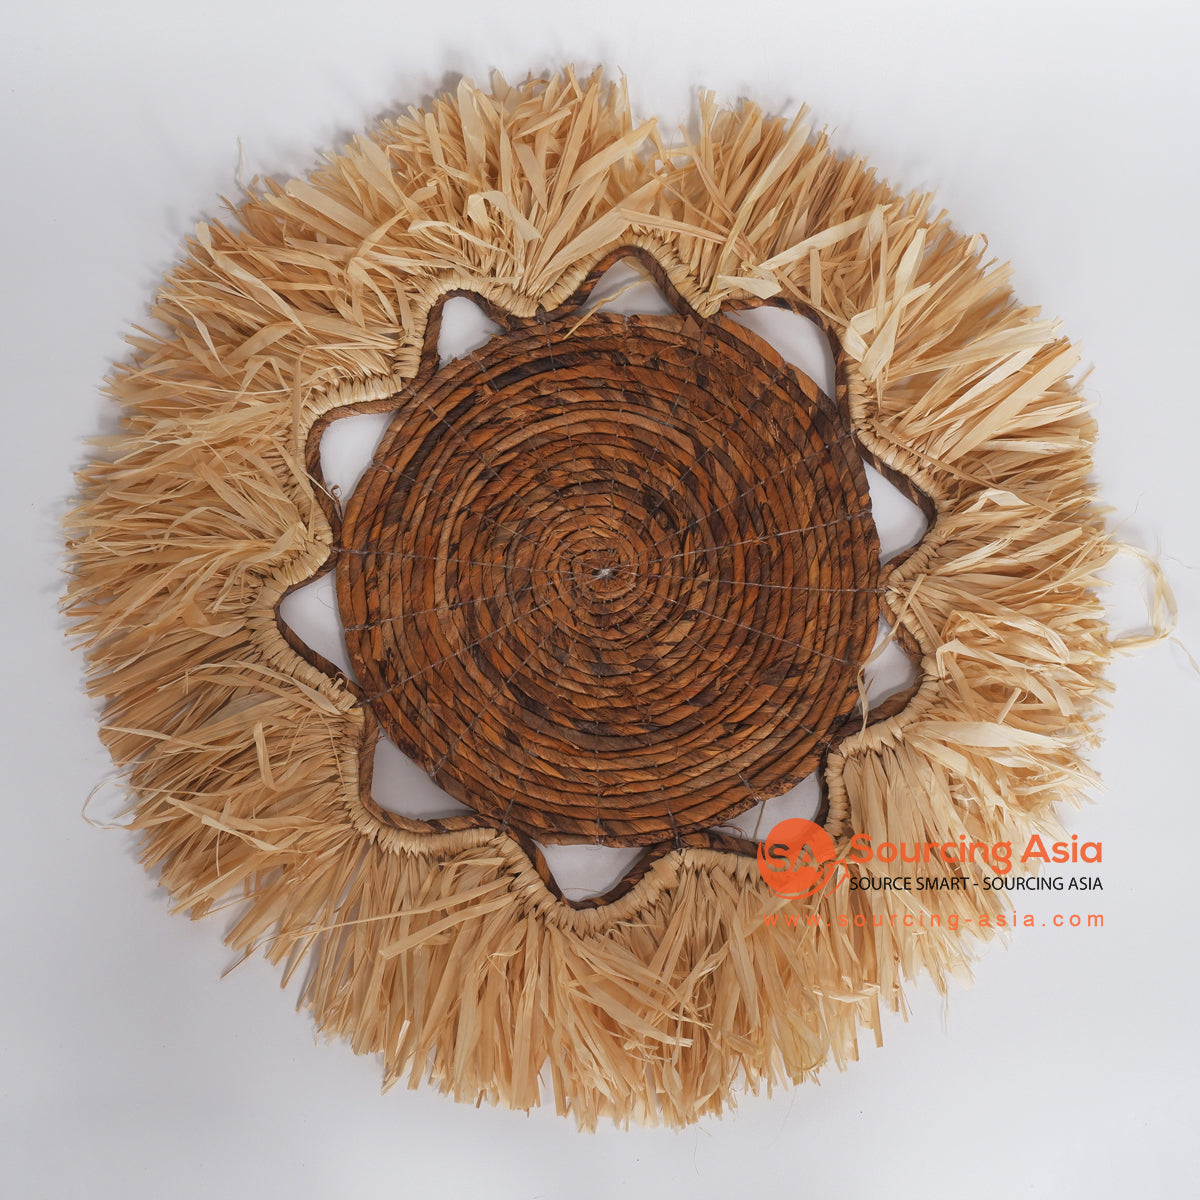 MRC330 NATURAL BANANA FIBER WALL DECORATION WITH MENDONG FRINGE